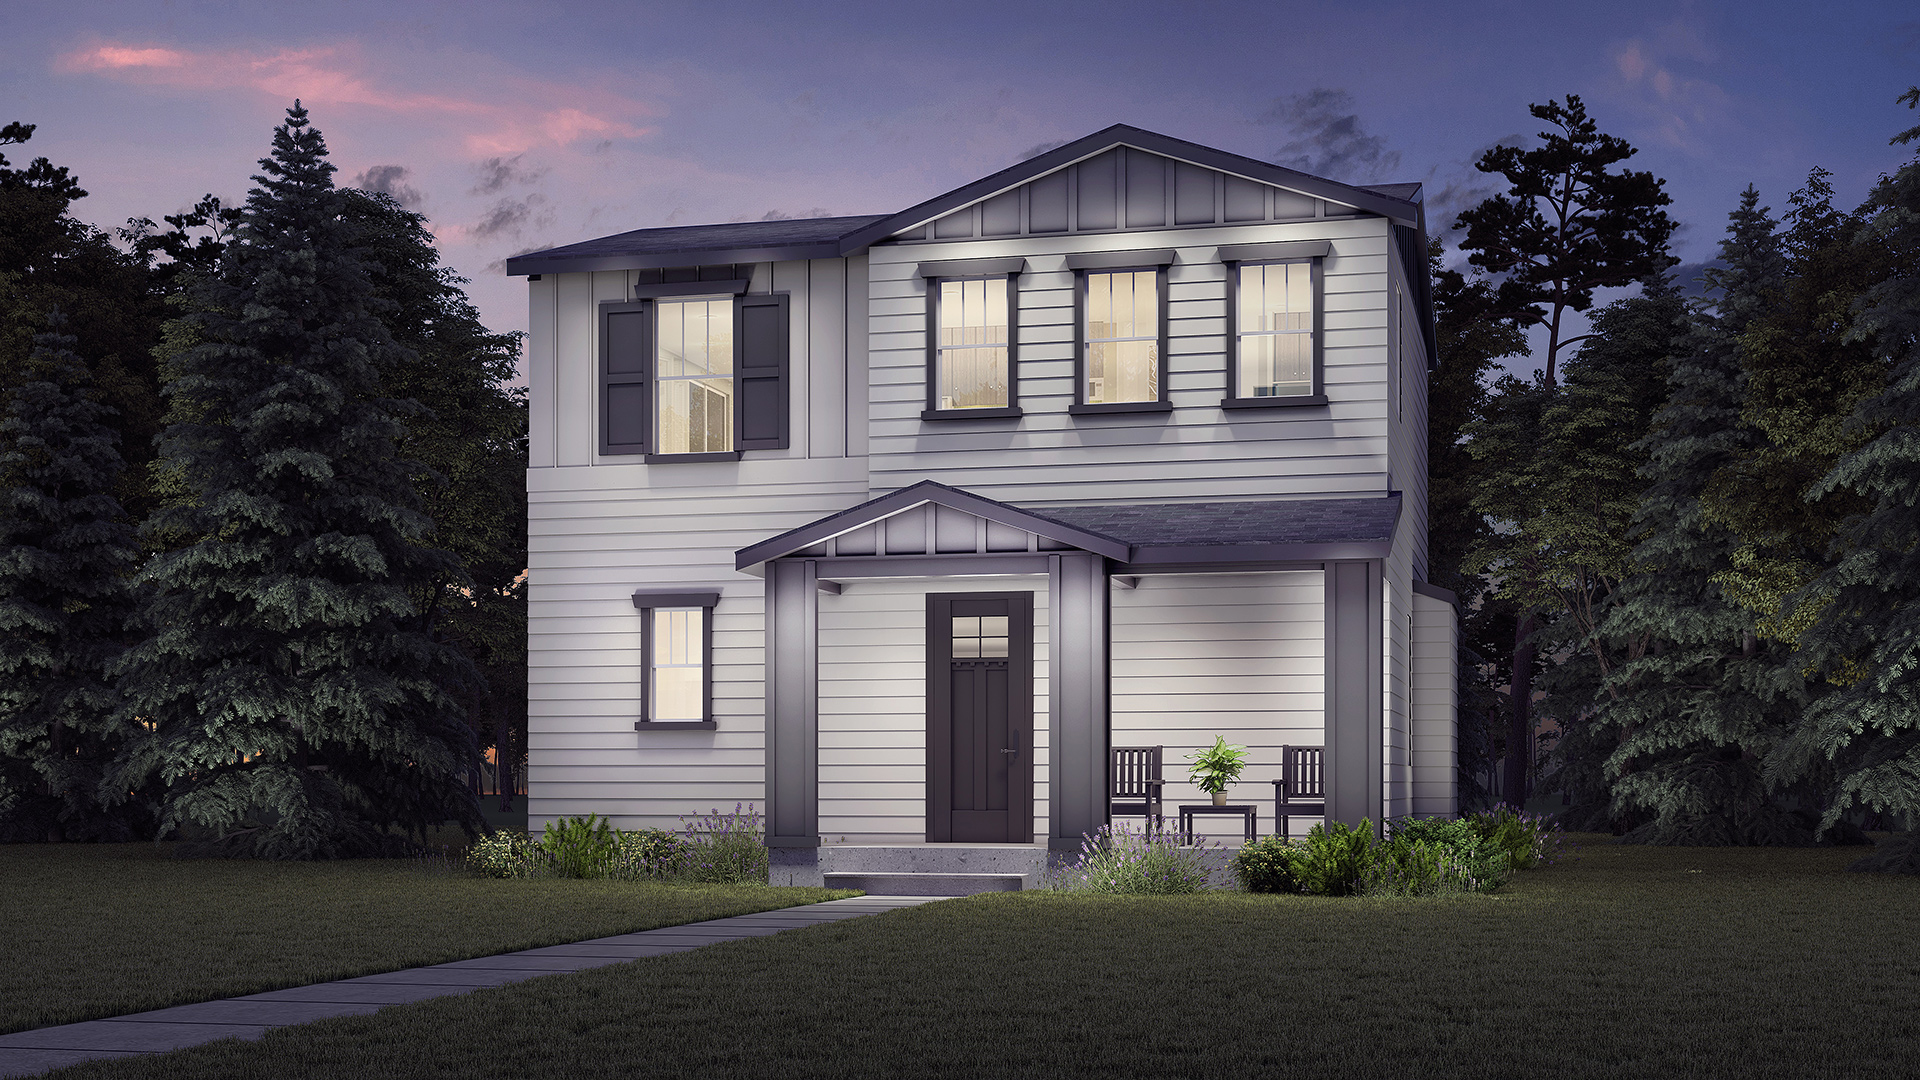 New Luxury Homes for Sale in Black Diamond, WA   Ten Trails - Cedarwood Collection